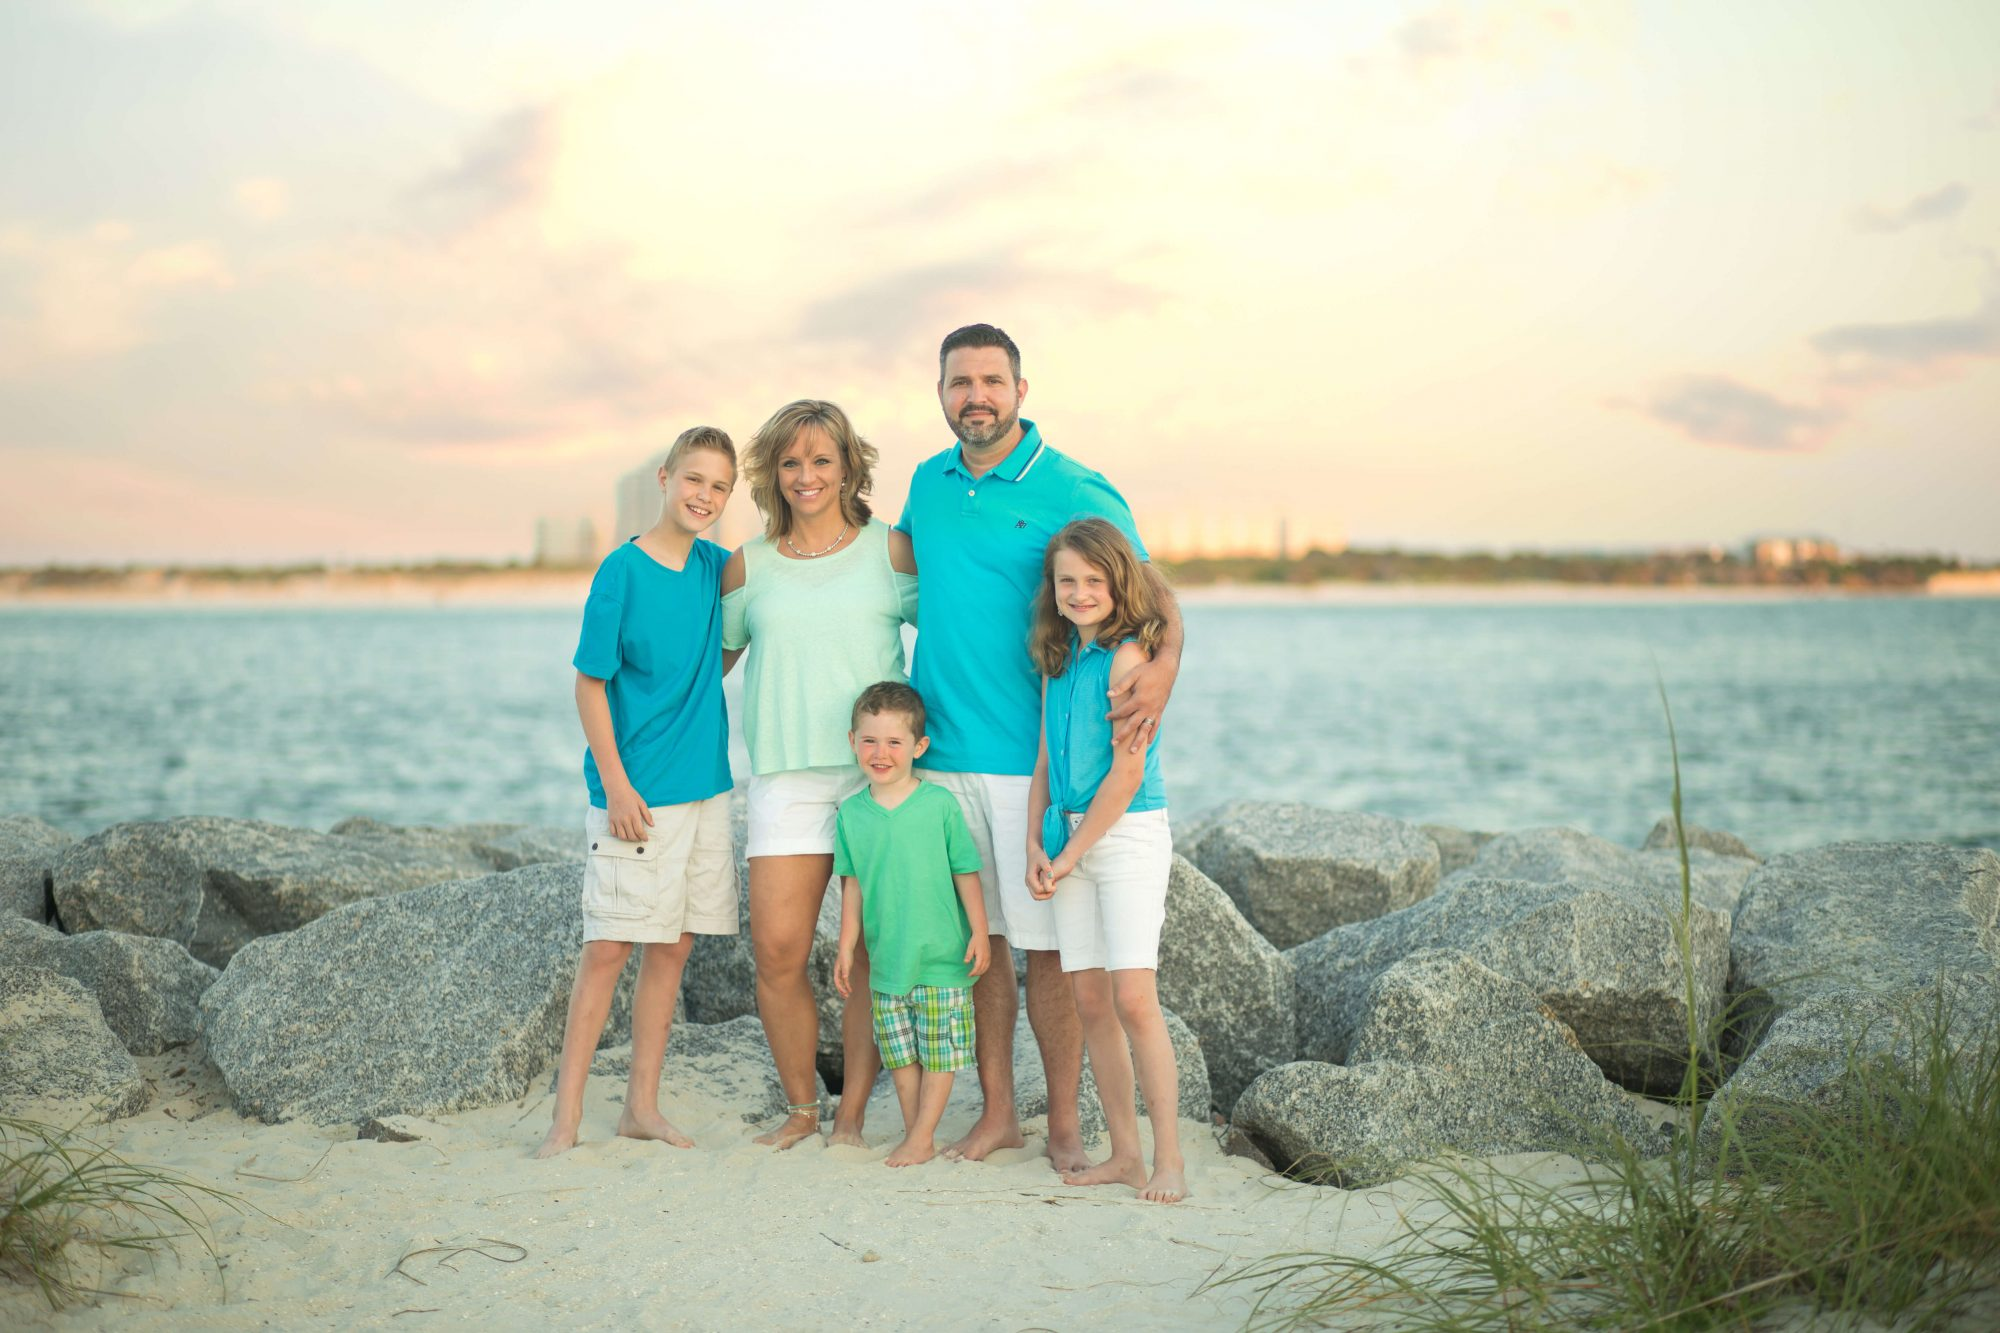 daytona beach family portraits